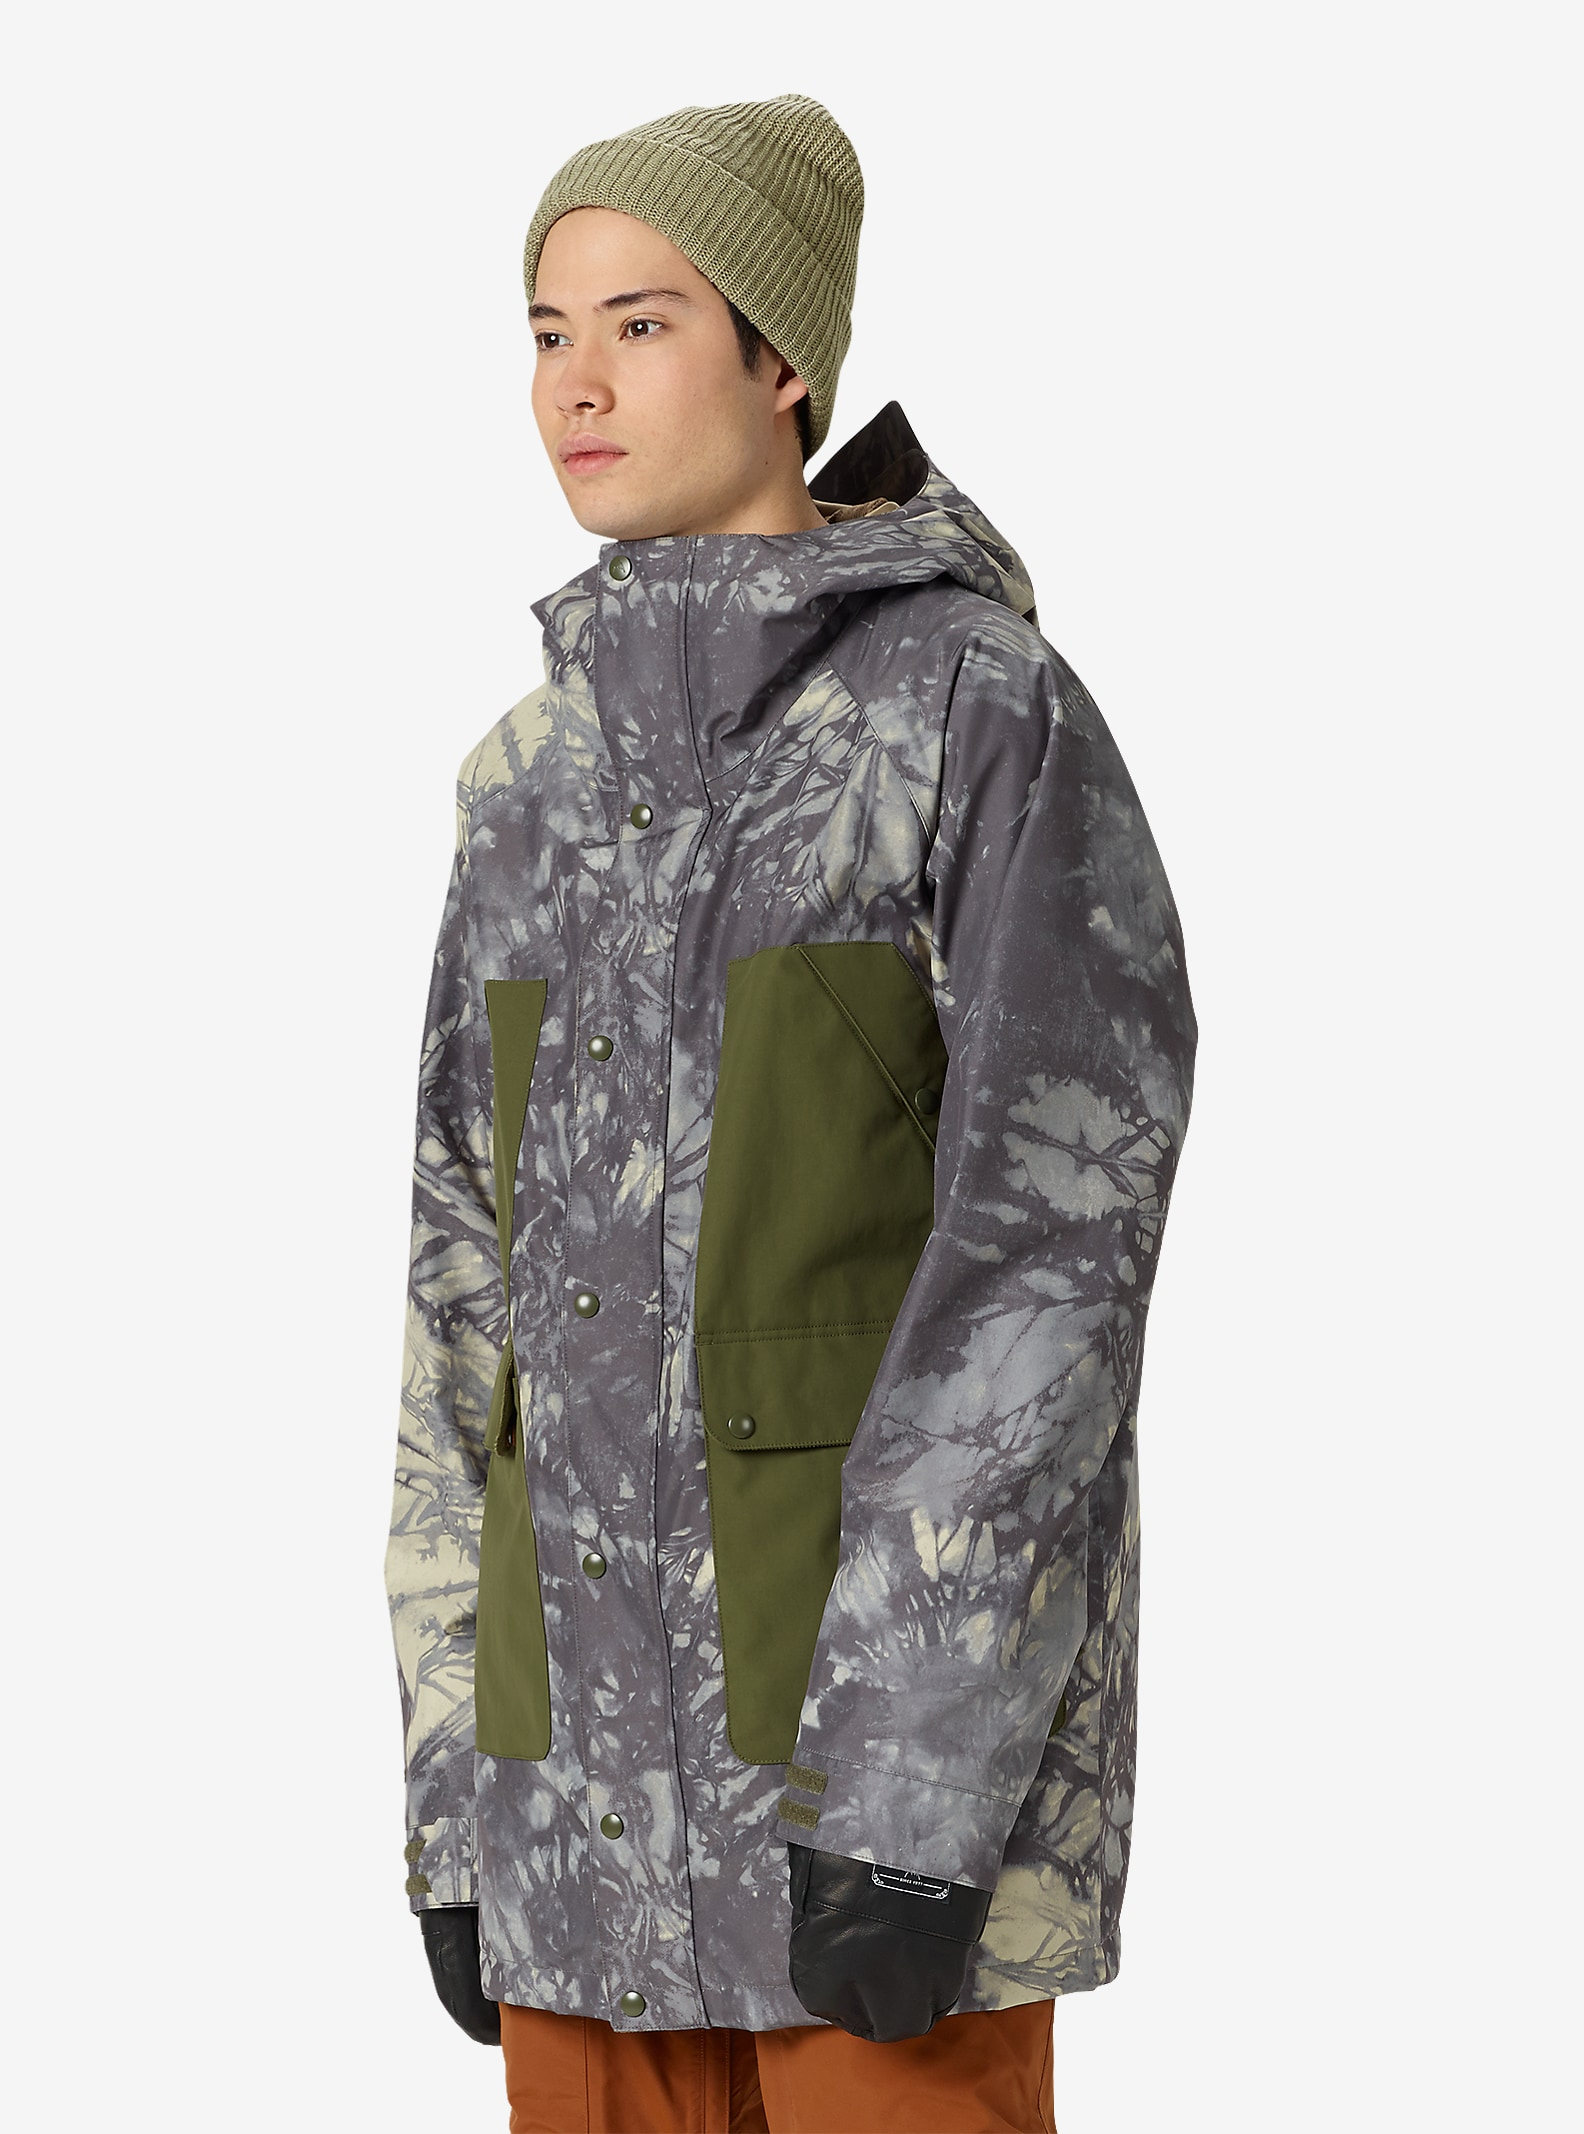 Burton GORE-TEX® Vagabond Jacket shown in Tie Dye Trench / Keef